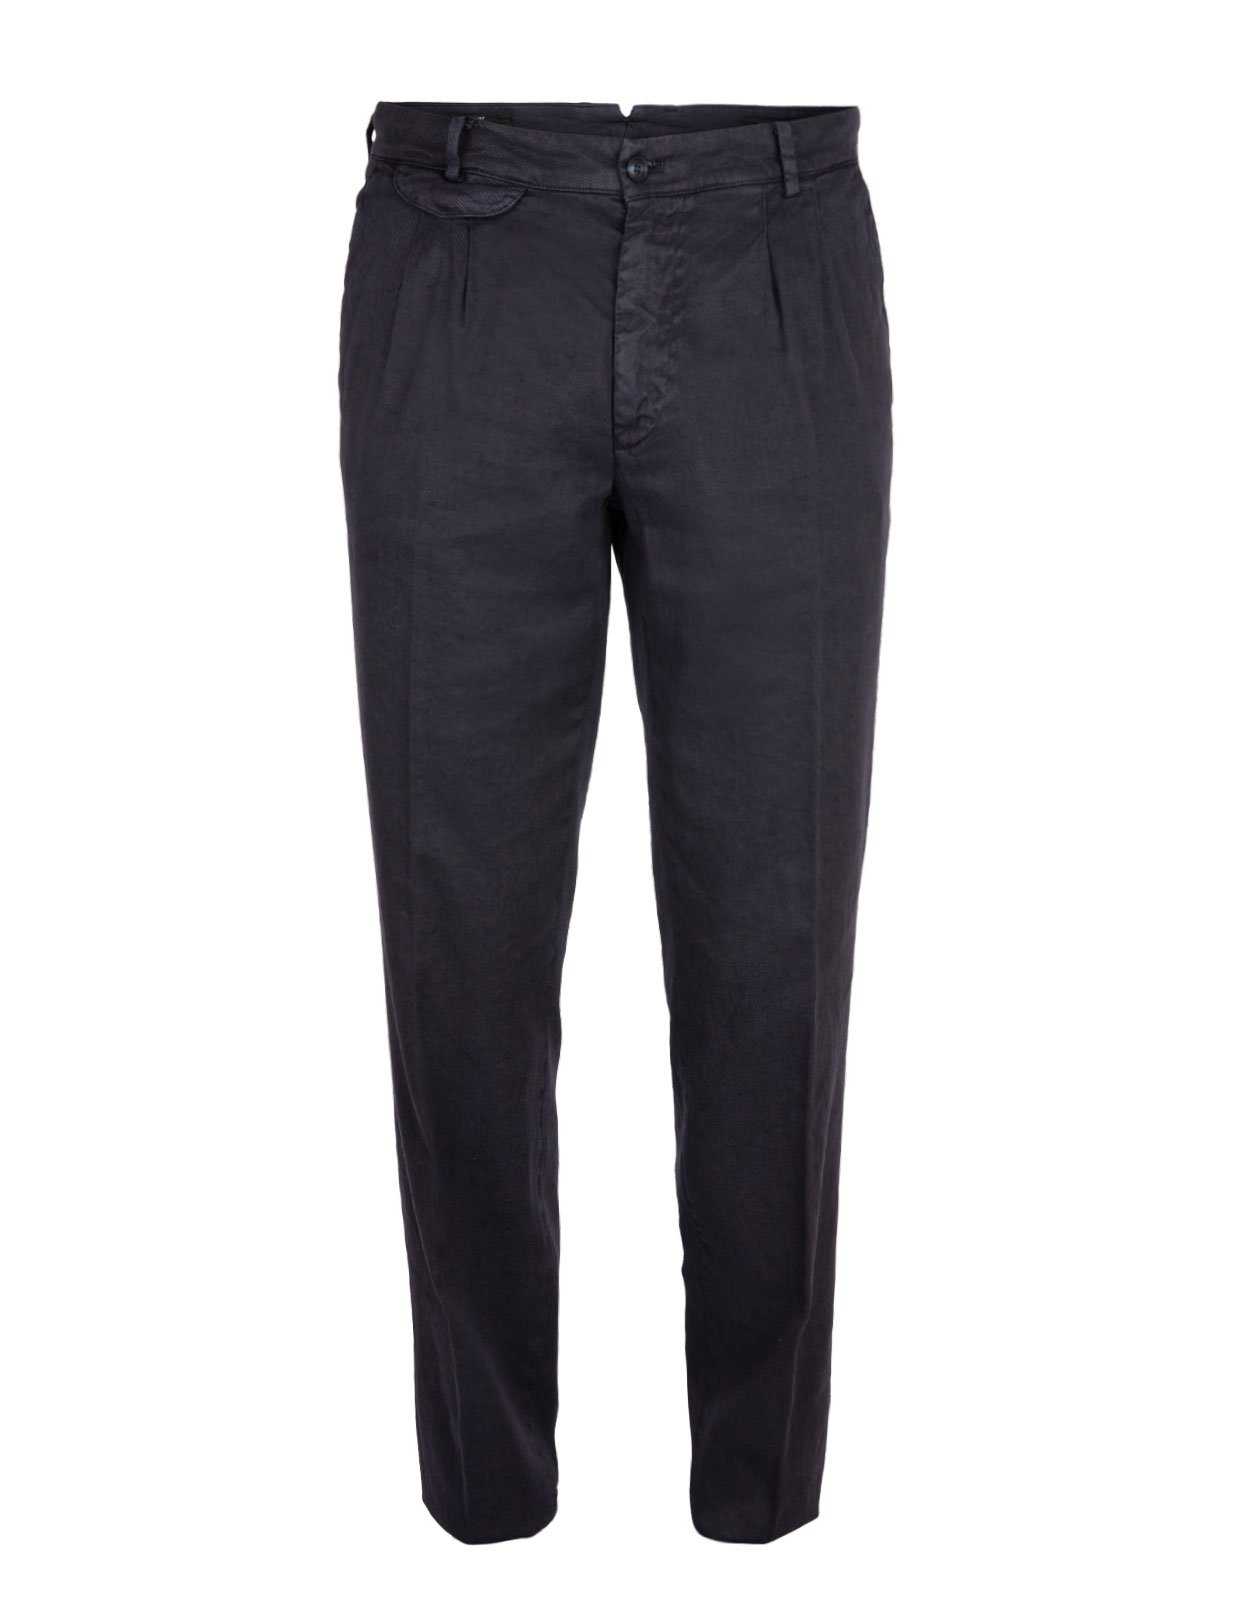 Amalfi Pleat Chinos Linen Cotton Stretch Blue Navy